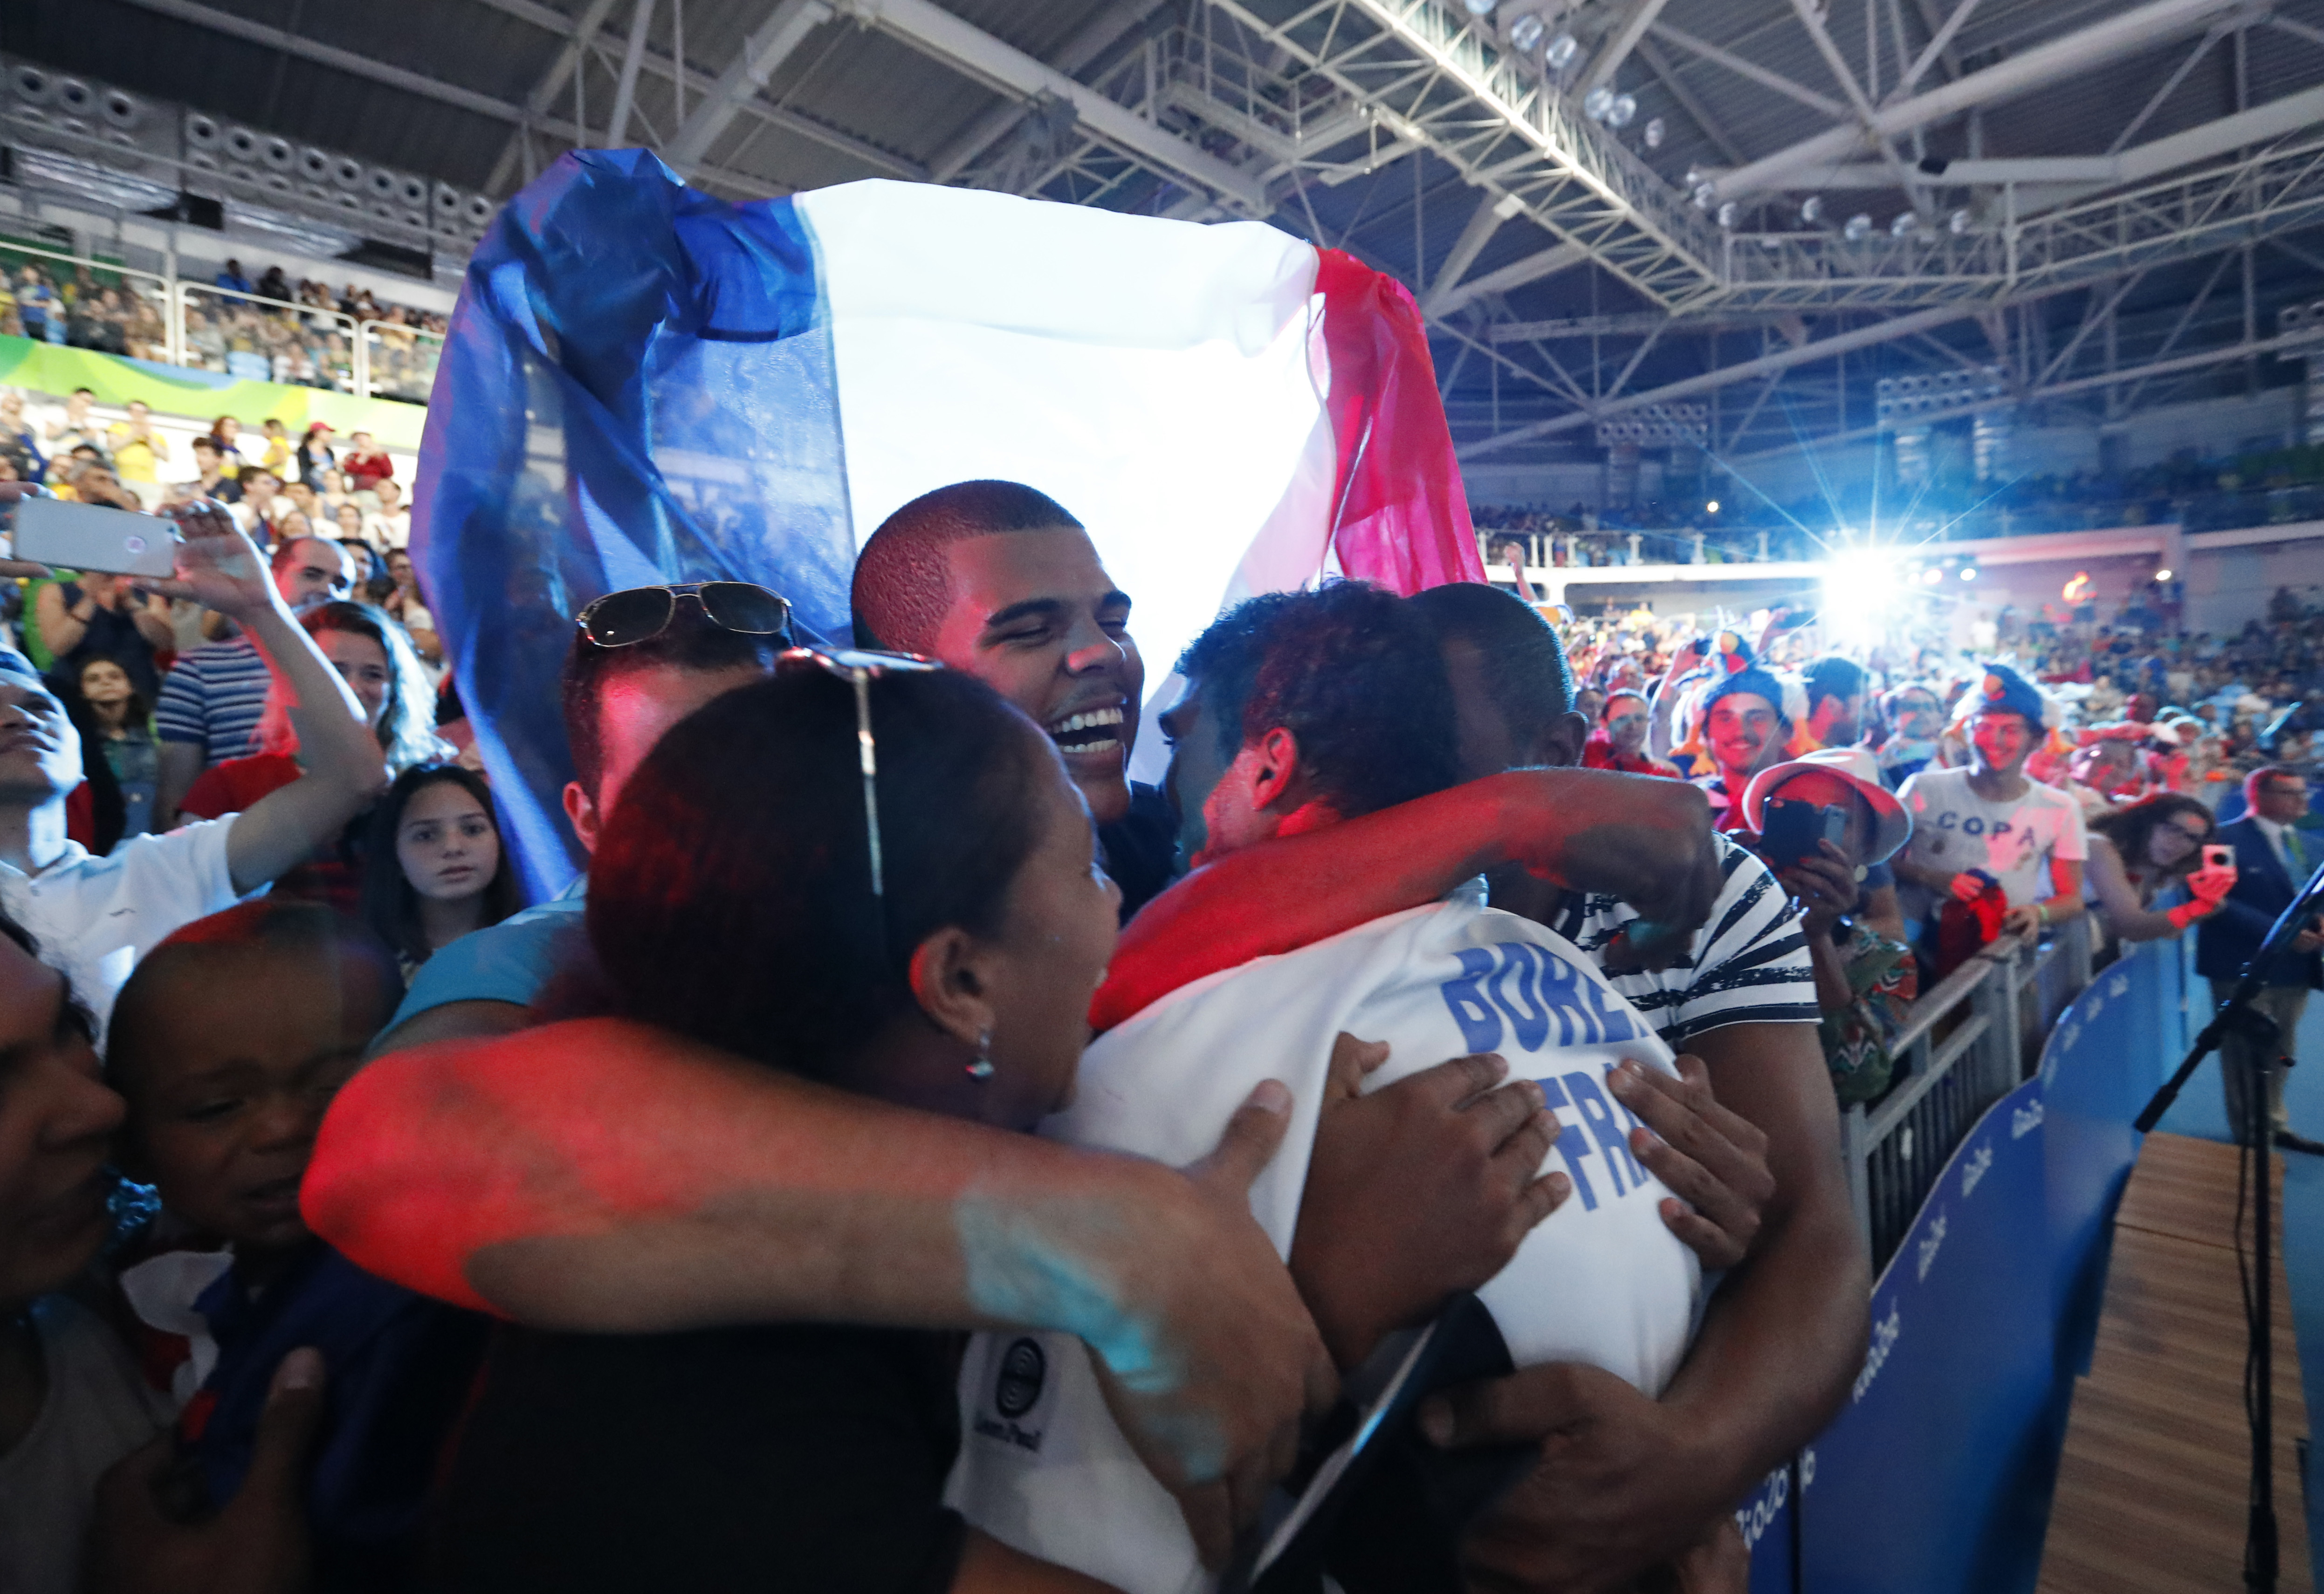 Enrico Garozzo from France, center, celebrate with fans after defeating Italy in the men's team epee fencing competition at the 2016 Summer Olympics in Rio de Janeiro, Brazil, Sunday, Aug. 14, 2016. (AP Photo/Vincent Thian)